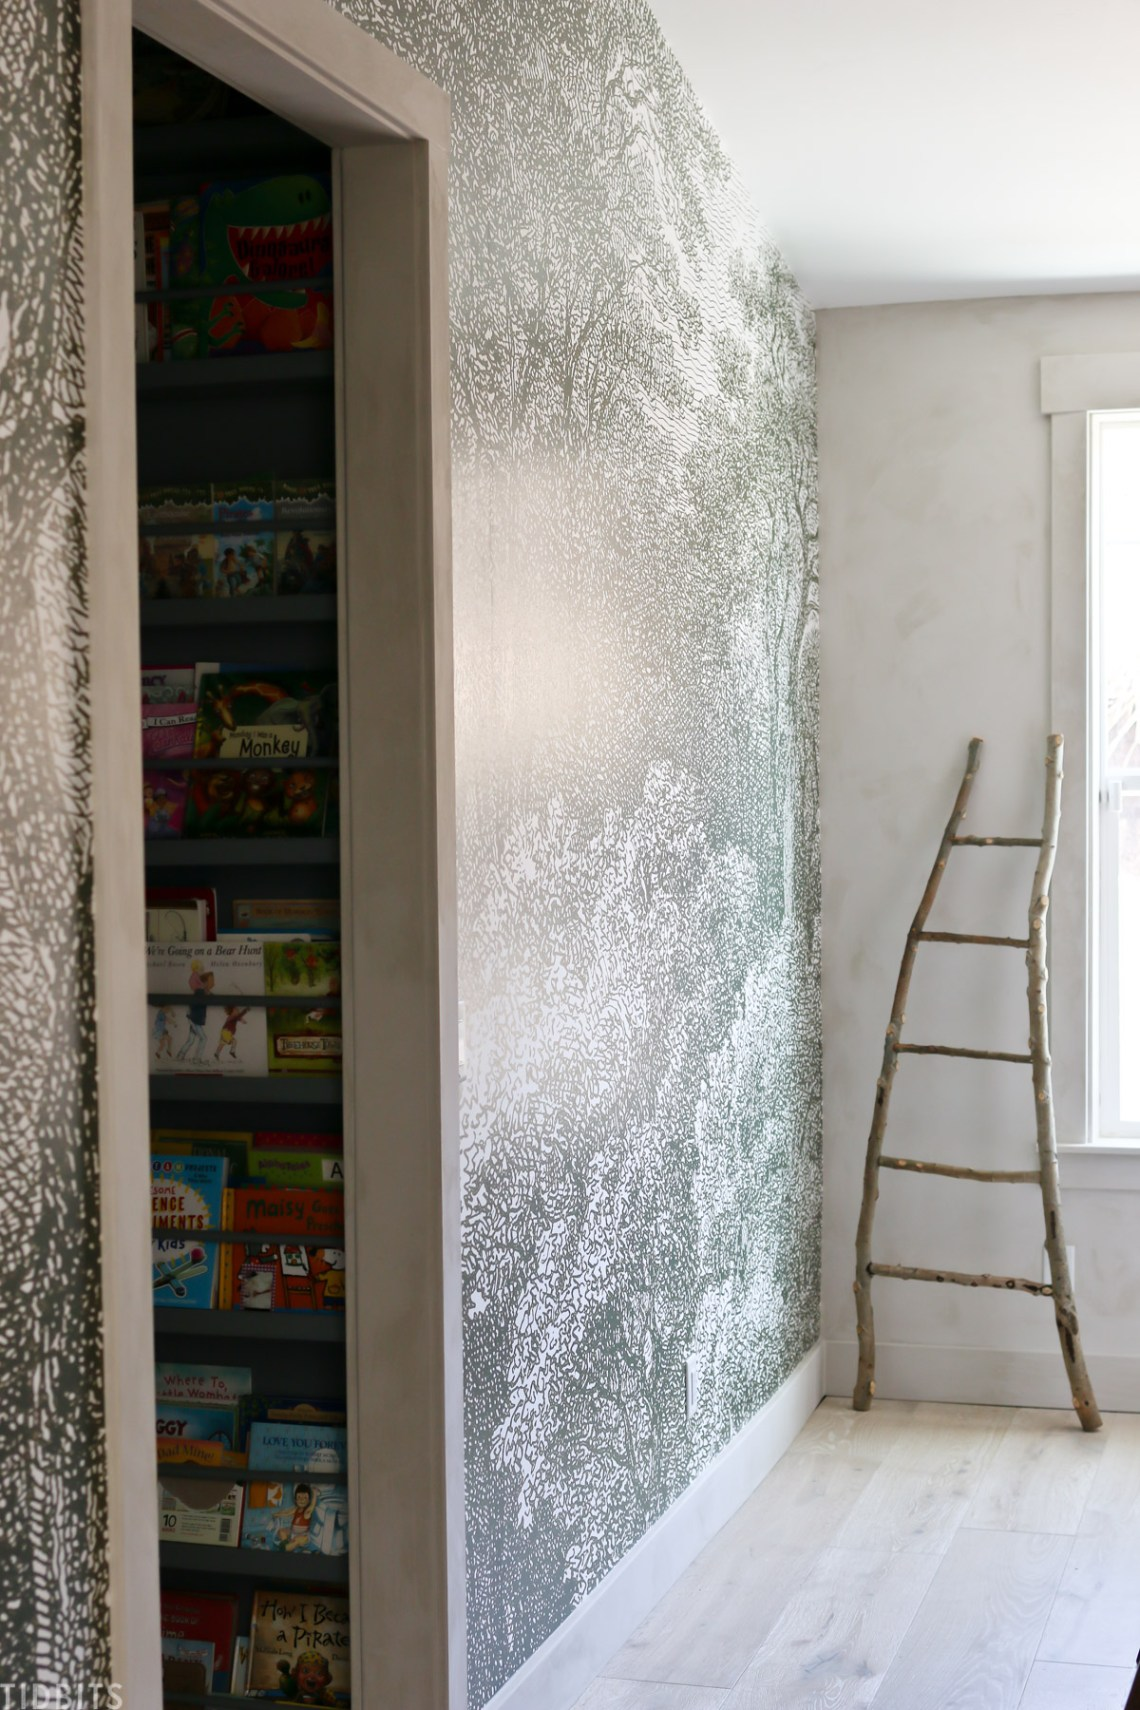 How To Apply A Mural Wallpaper And Tips For Success